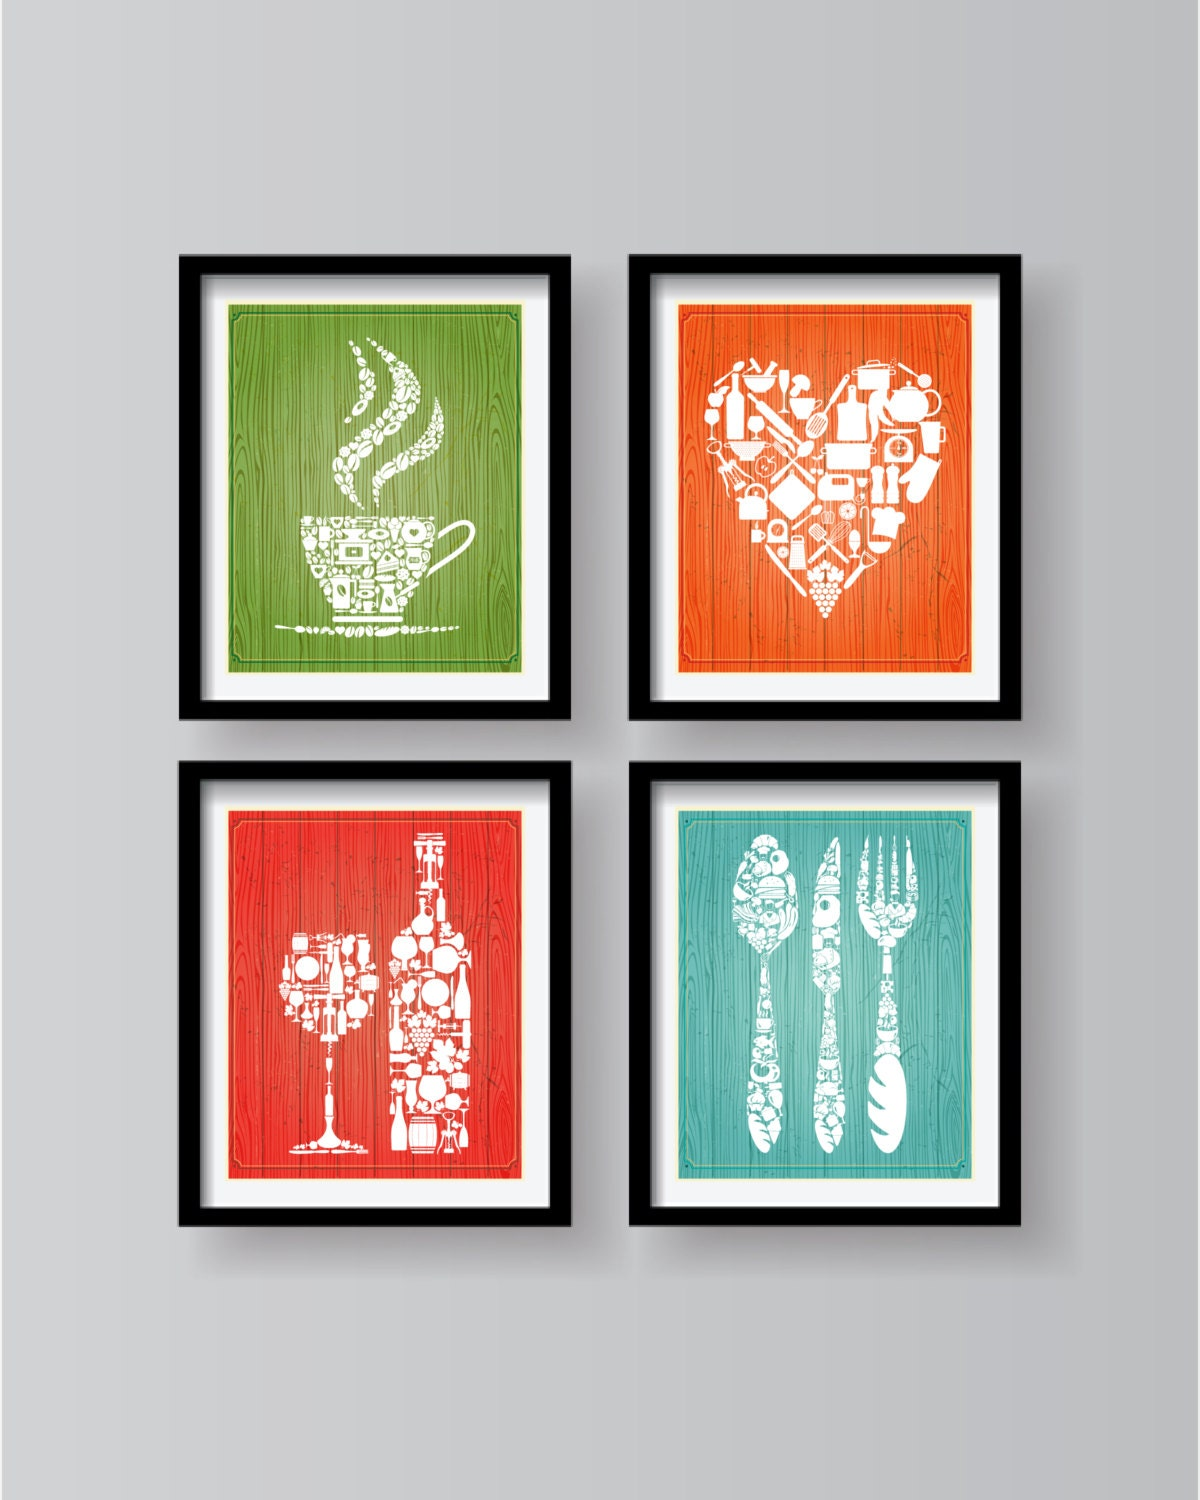 Colorful Kitchen Wall Art: Old Colorful Wood Style Background Kitchen Decor Kitchen Wall